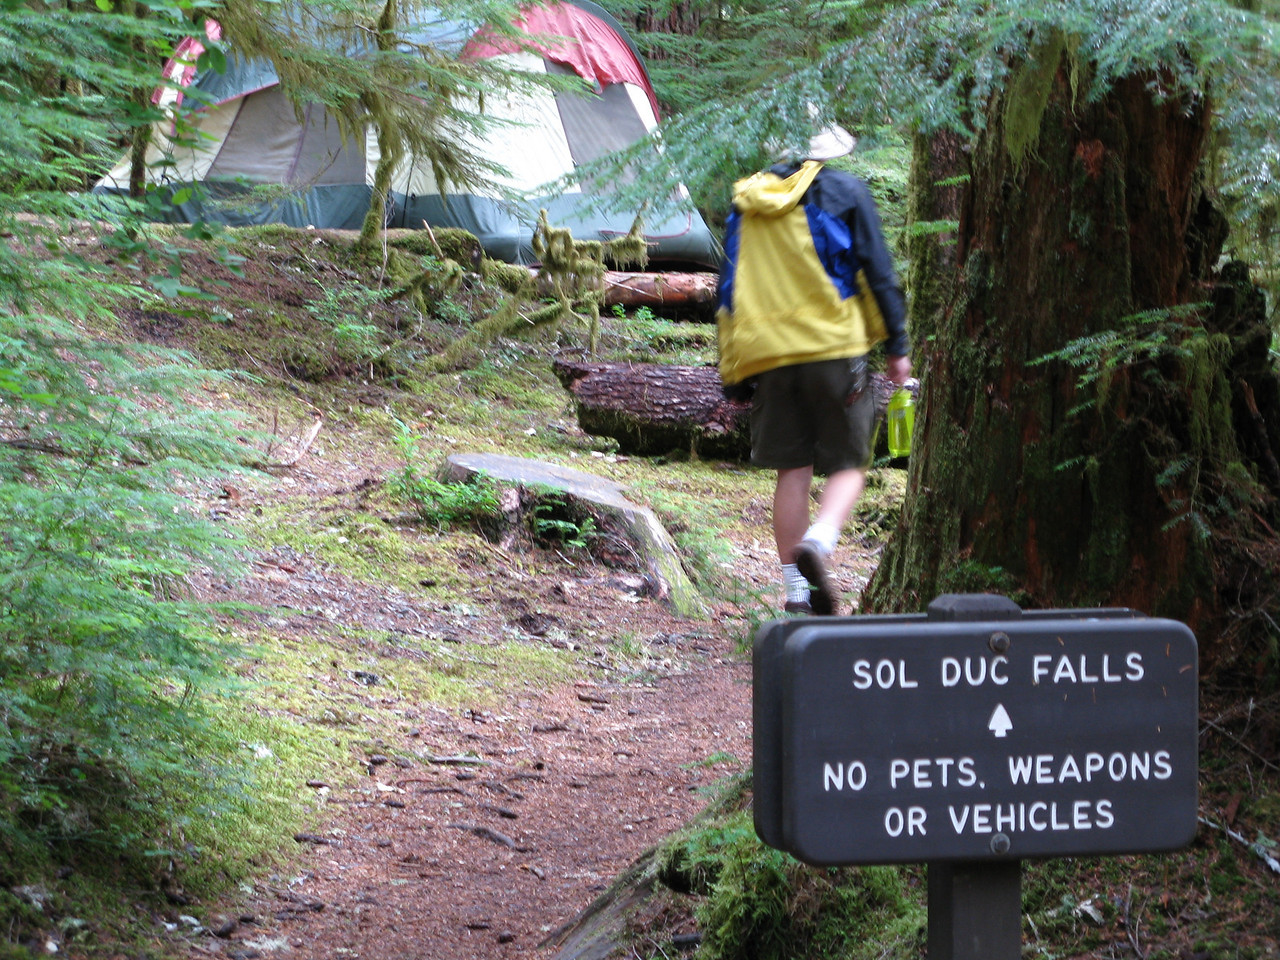 The trail took us through the Sol Duc Campground in Olympic National Park.